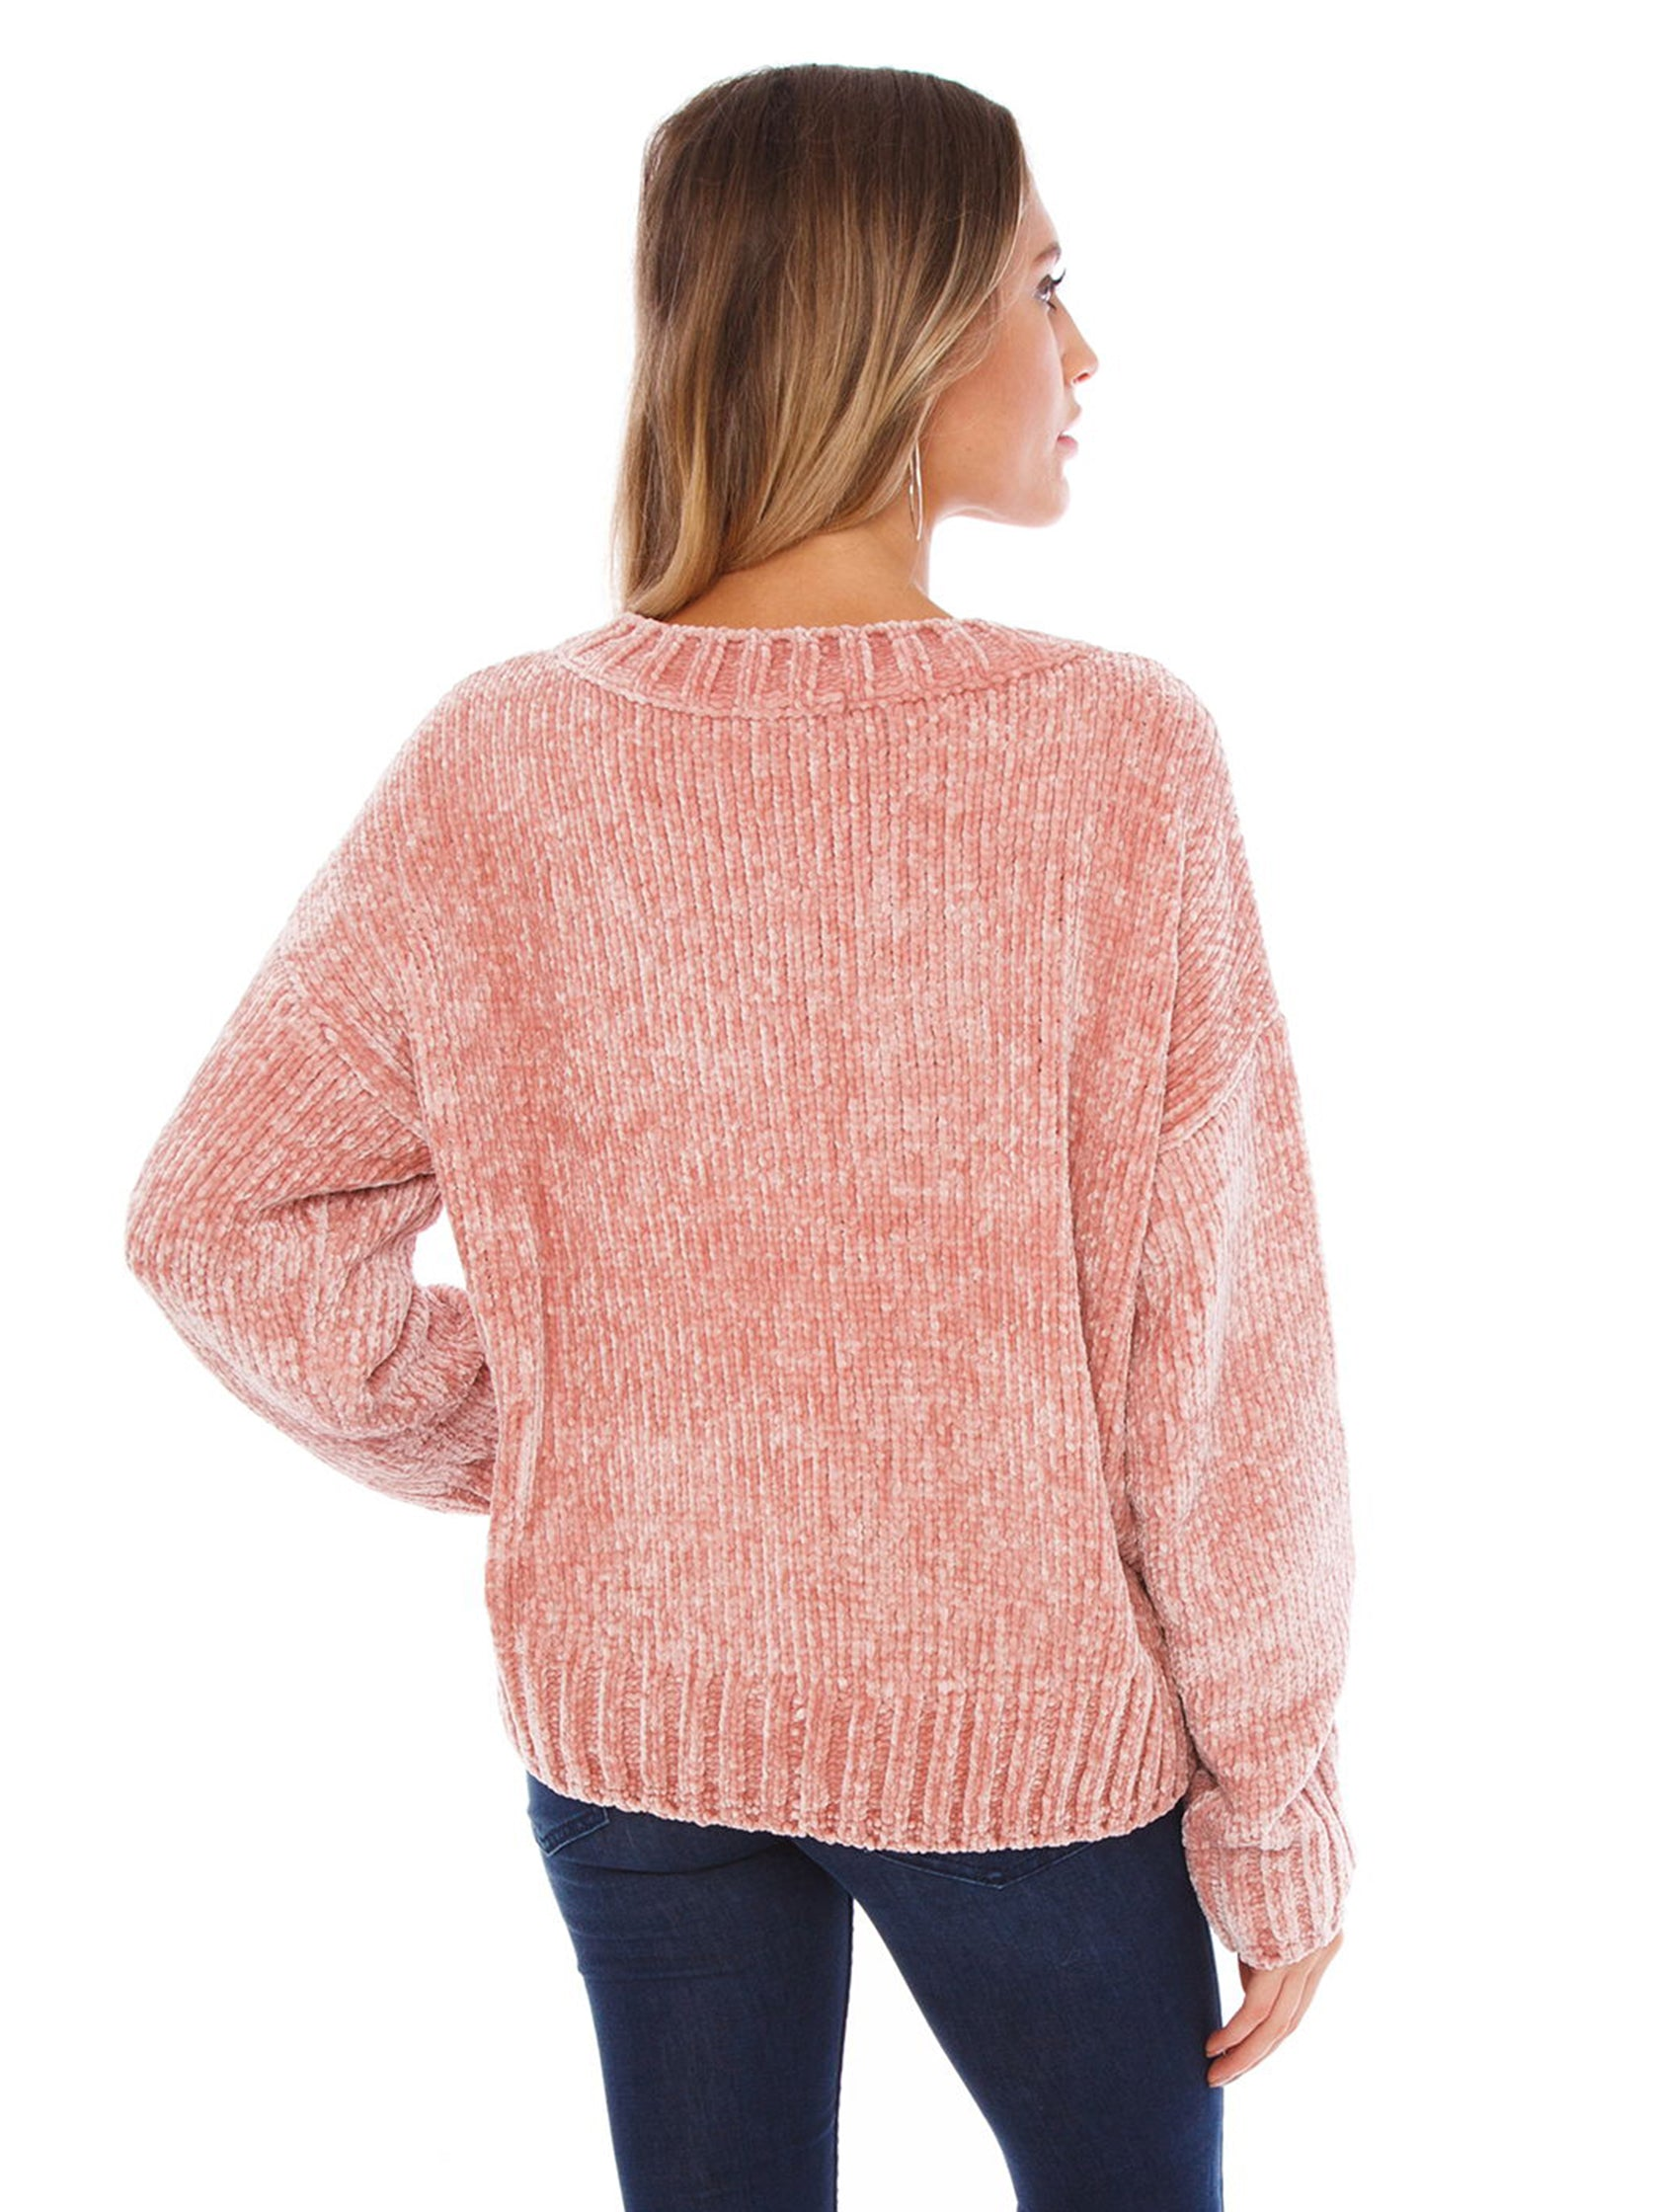 Women outfit in a sweater rental from SANCTUARY called Chenille Pullover